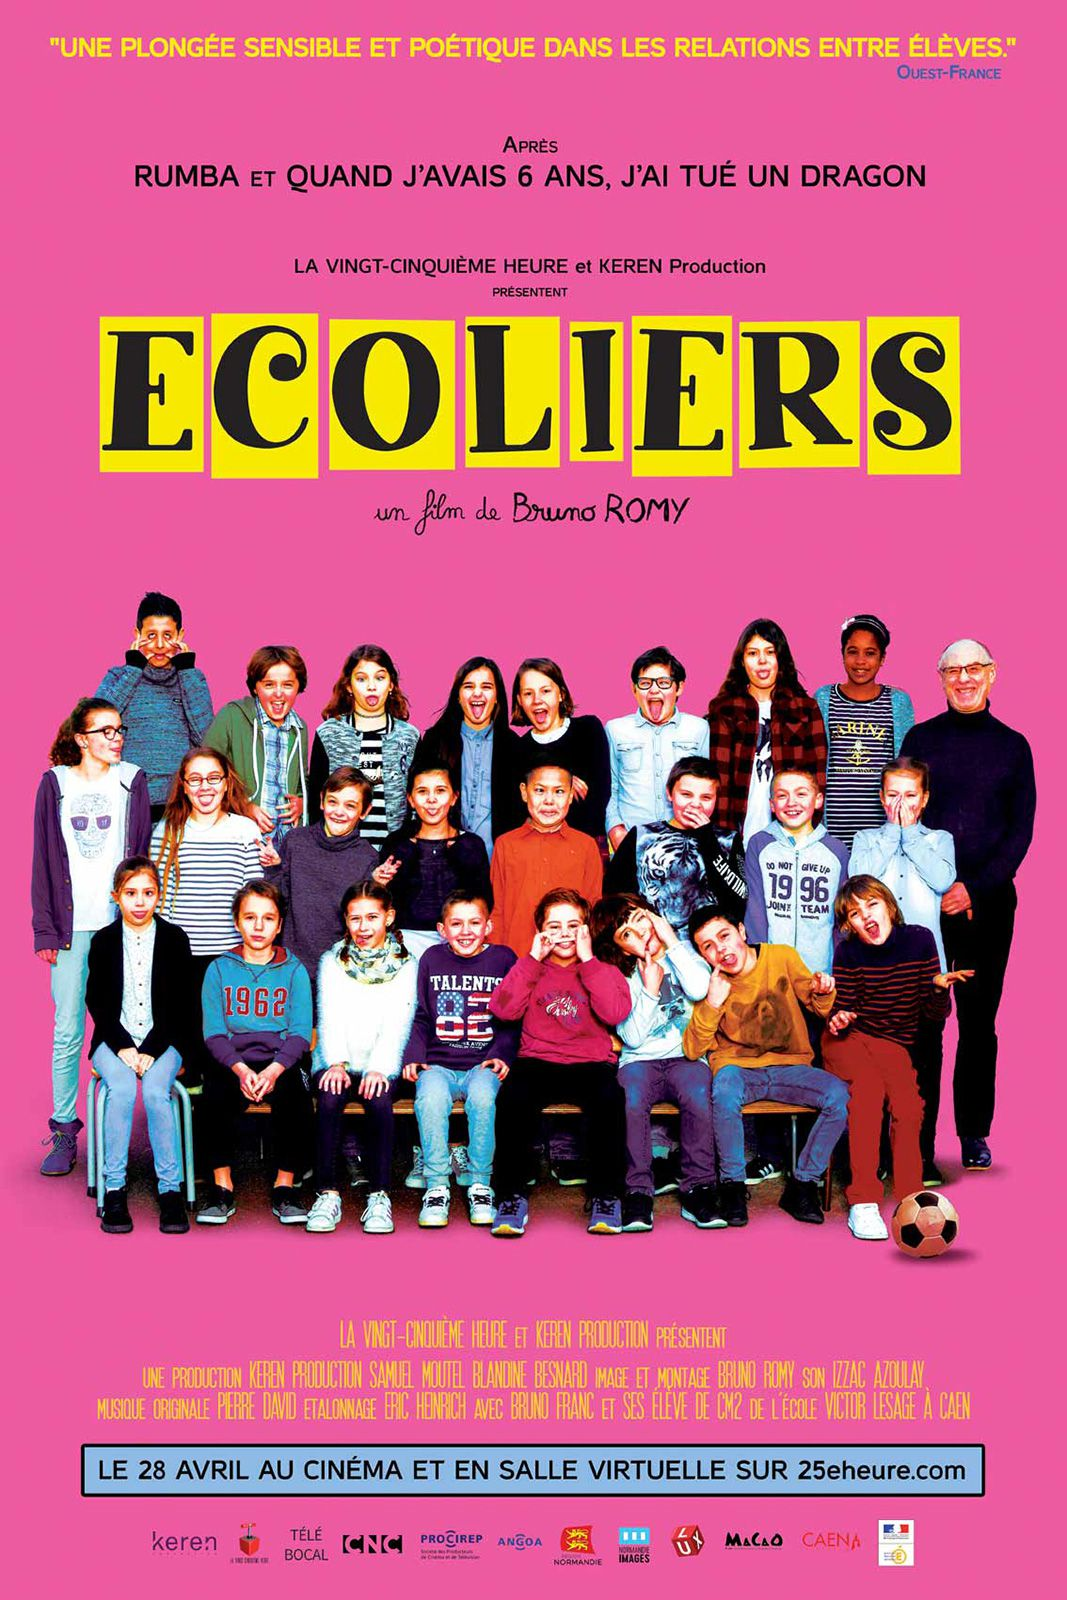 Écoliers - Documentaire (2021) streaming VF gratuit complet